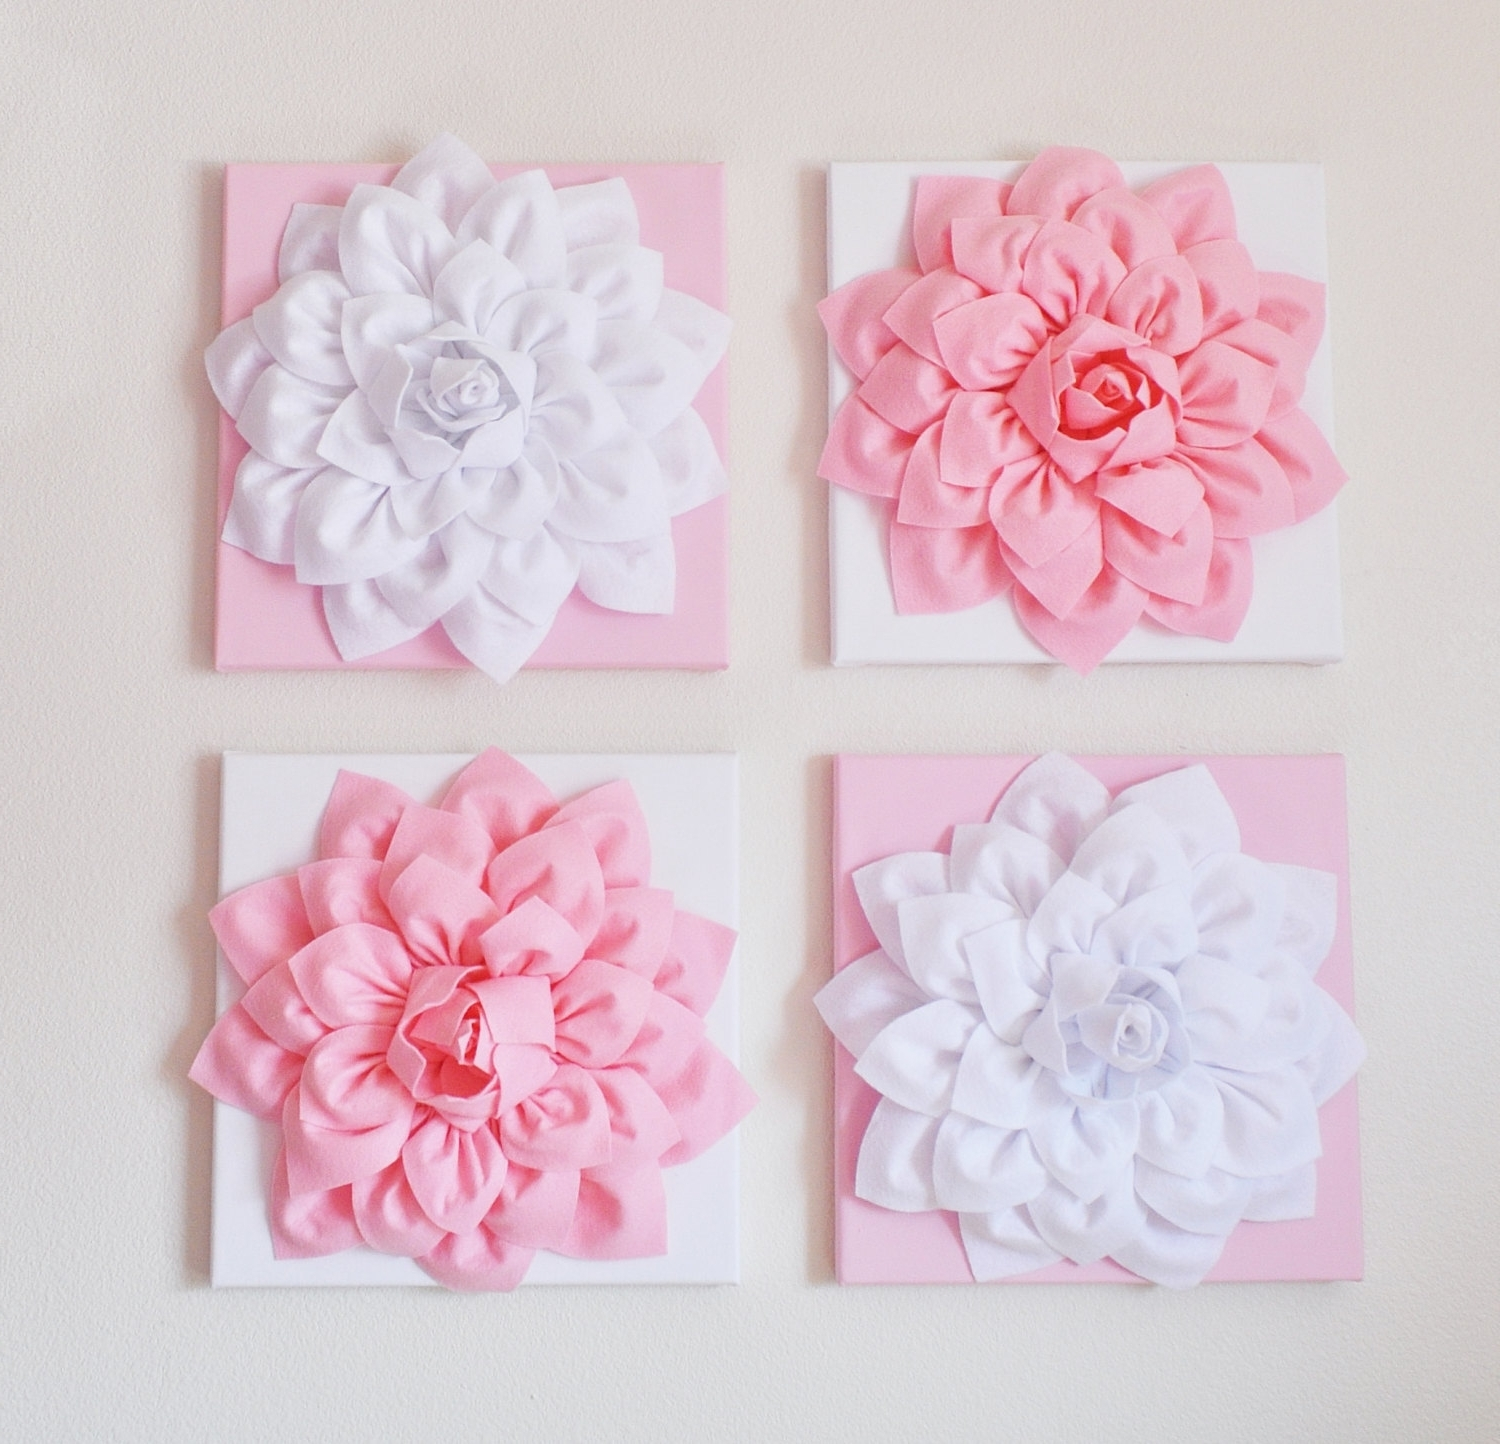 Blossom White 3D Wall Art Intended For Well Known Isabella Ceramic Flower Blossom Wall Art Carnation Multi Pastel (View 5 of 15)